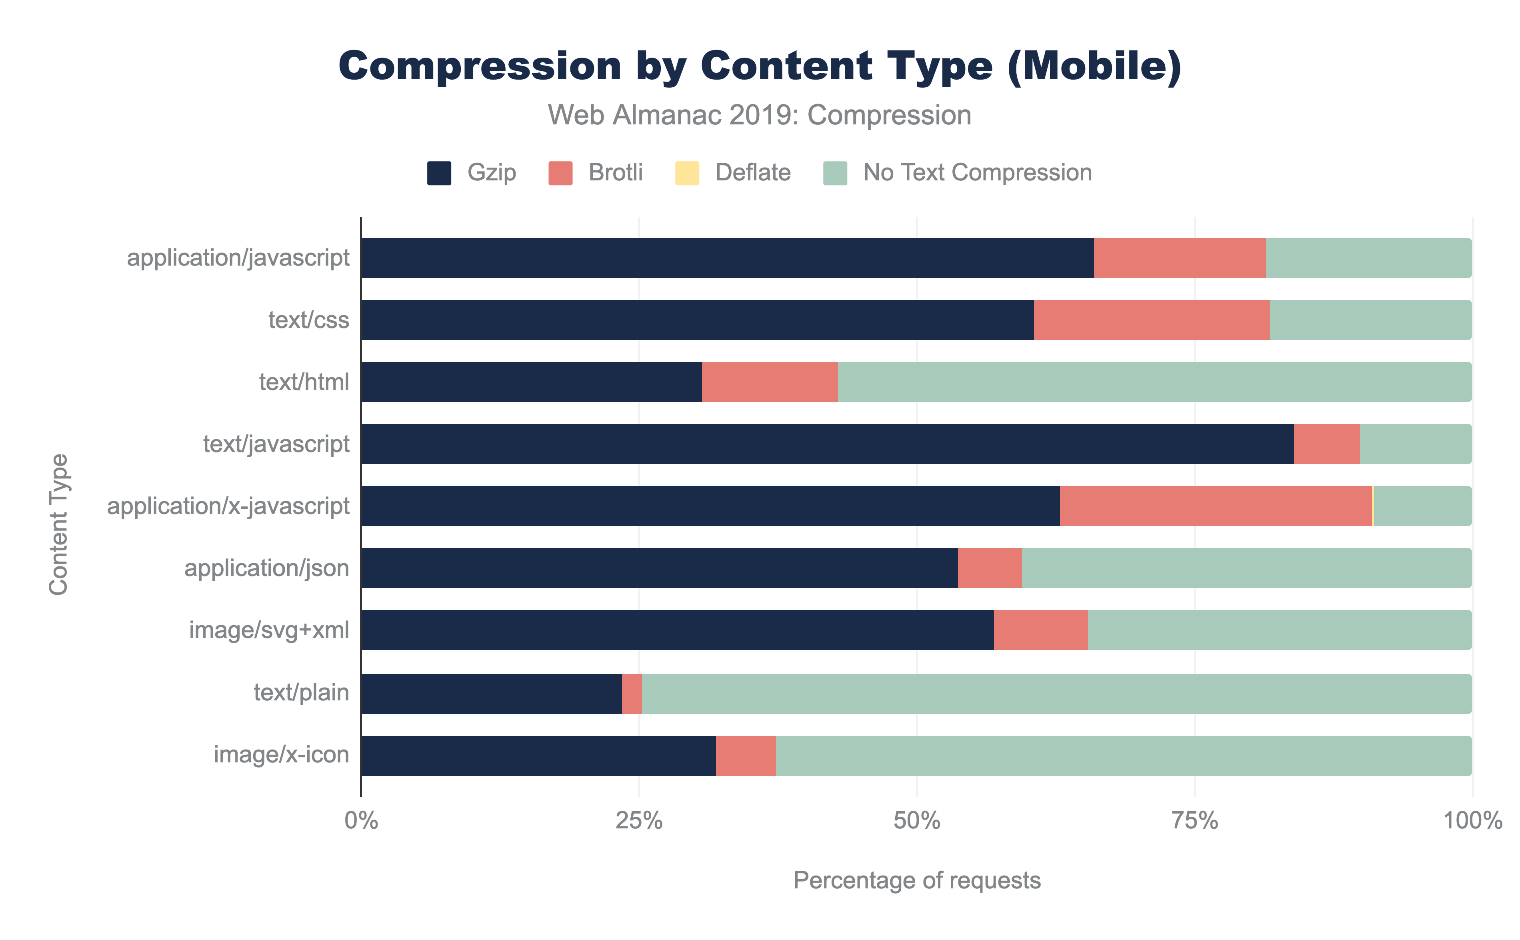 Figure 8. Compression by content type as a percent for mobile.